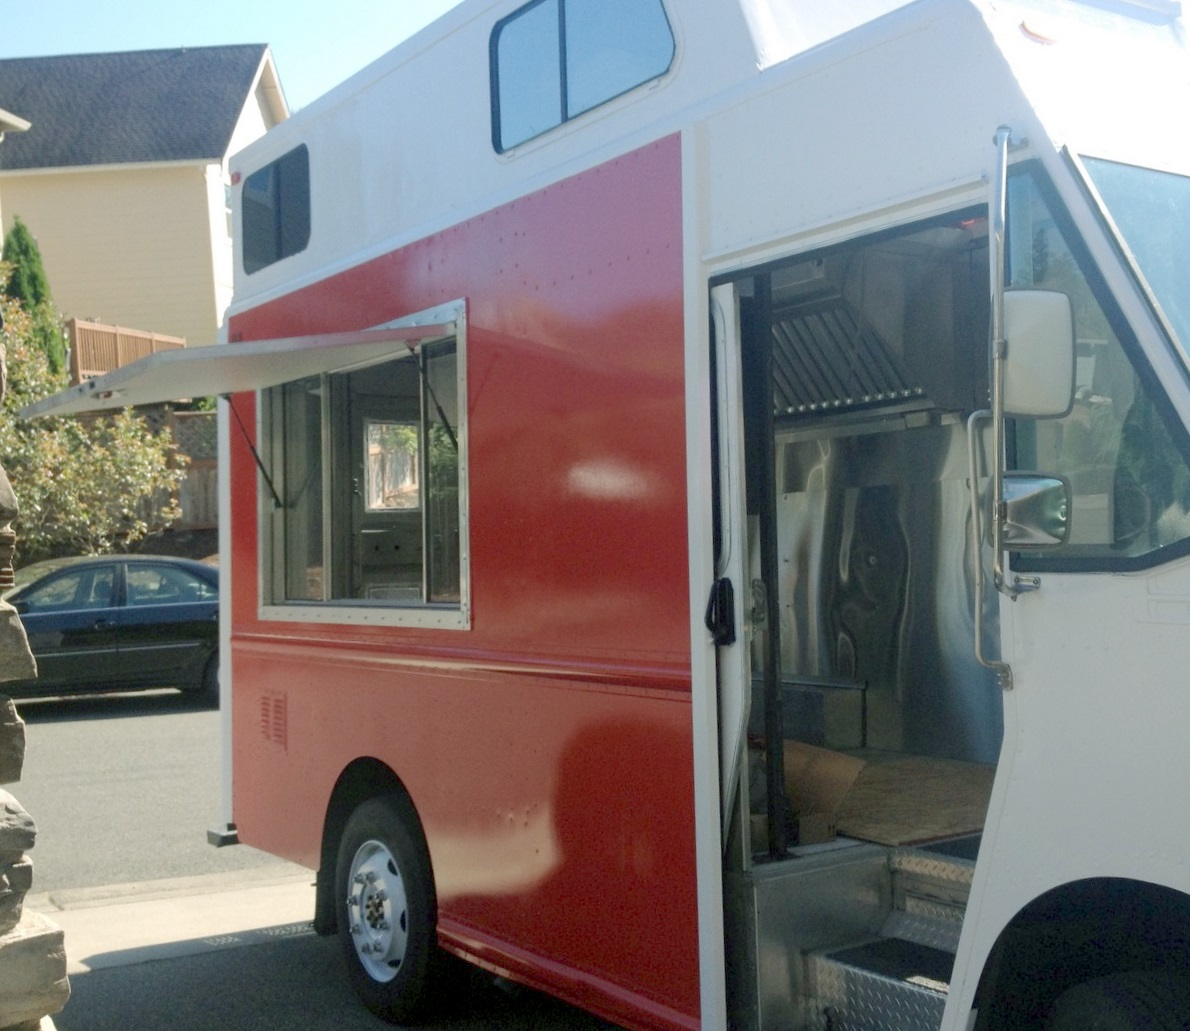 Food Truck Parked to Display the New Service Window Exterior View